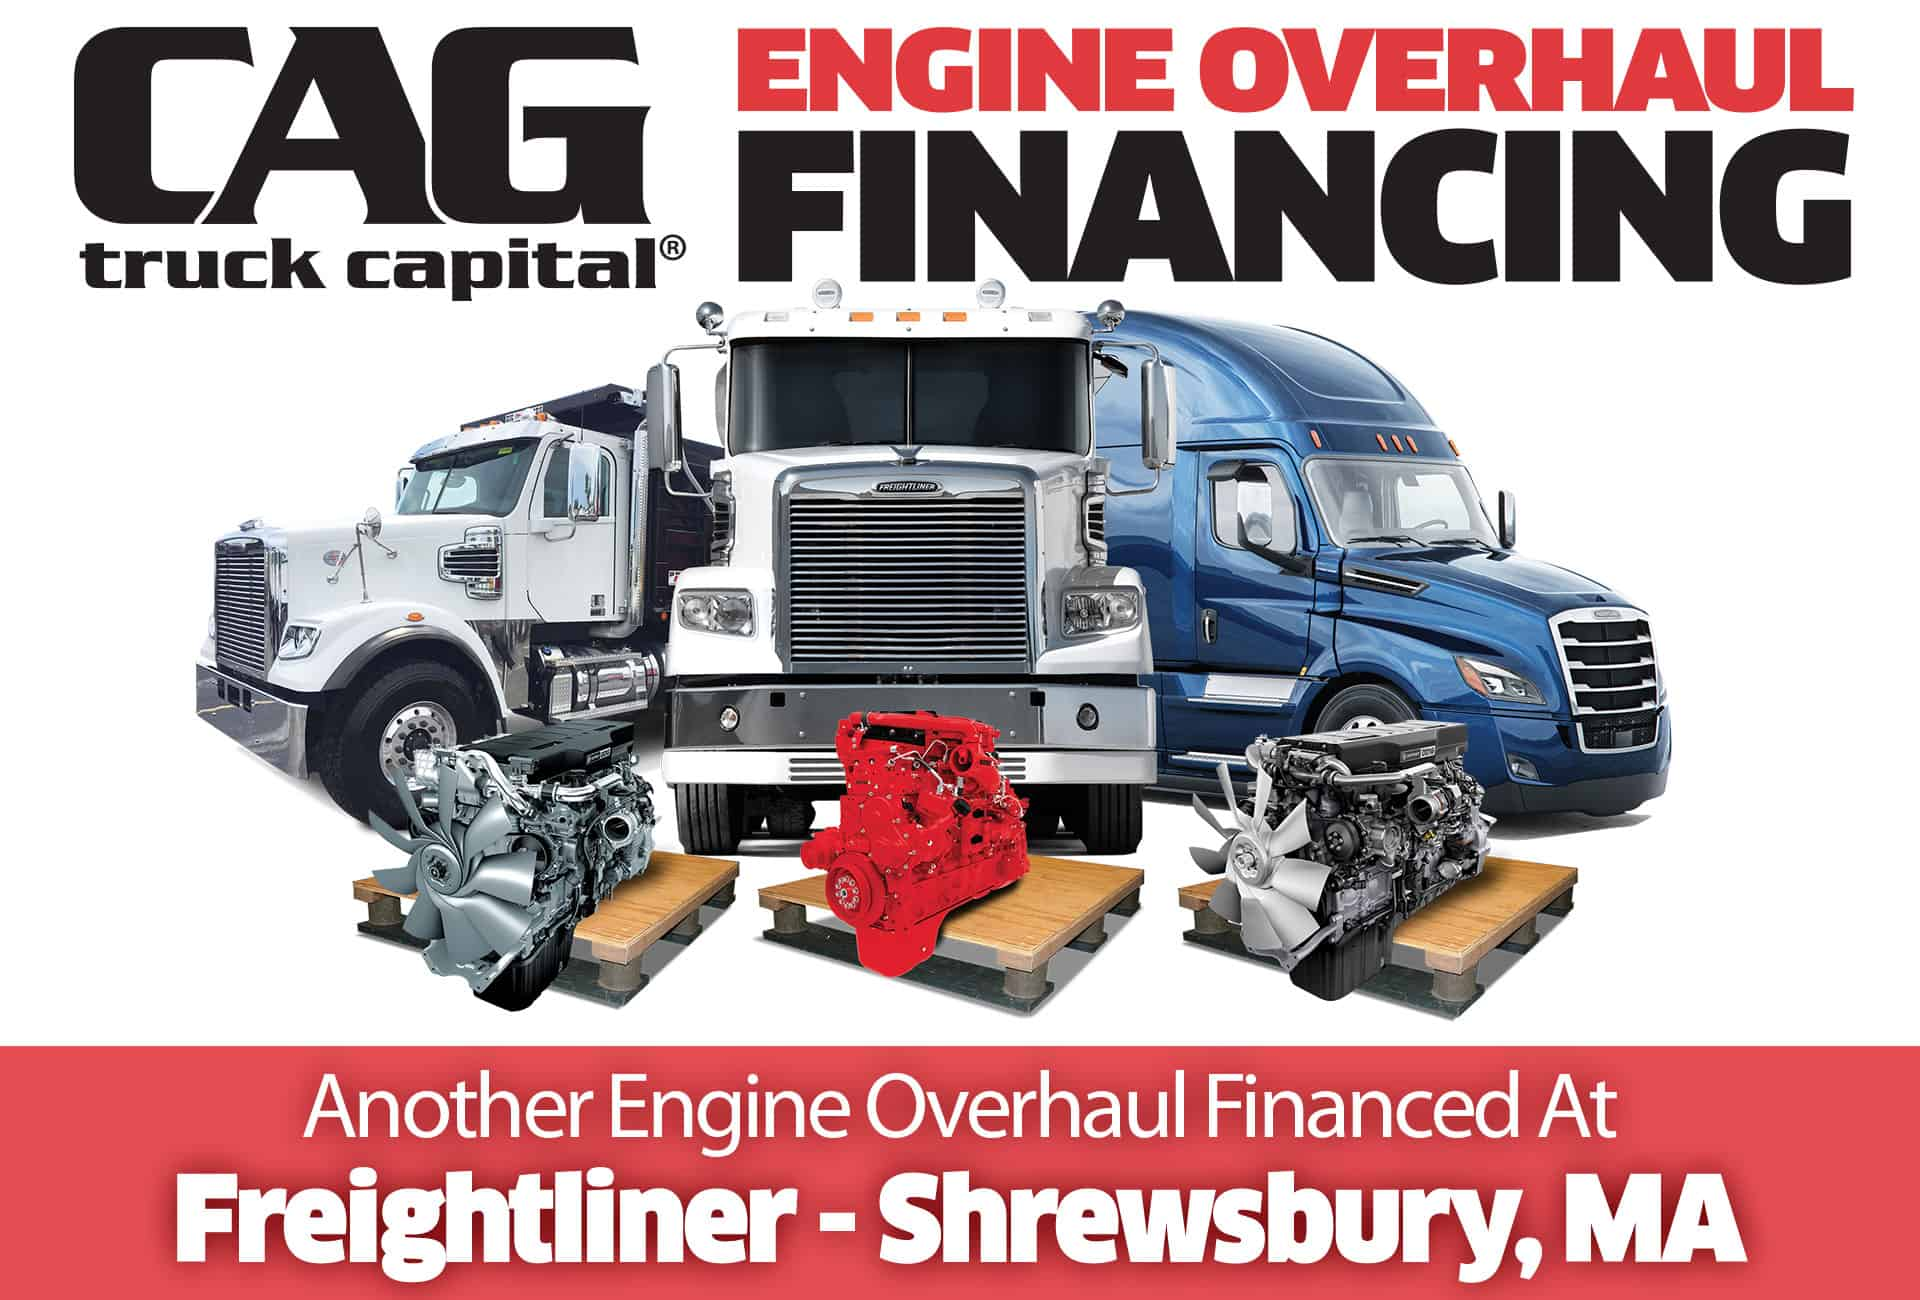 Freightliner Engine Overhauls In Shrewsbury, MA